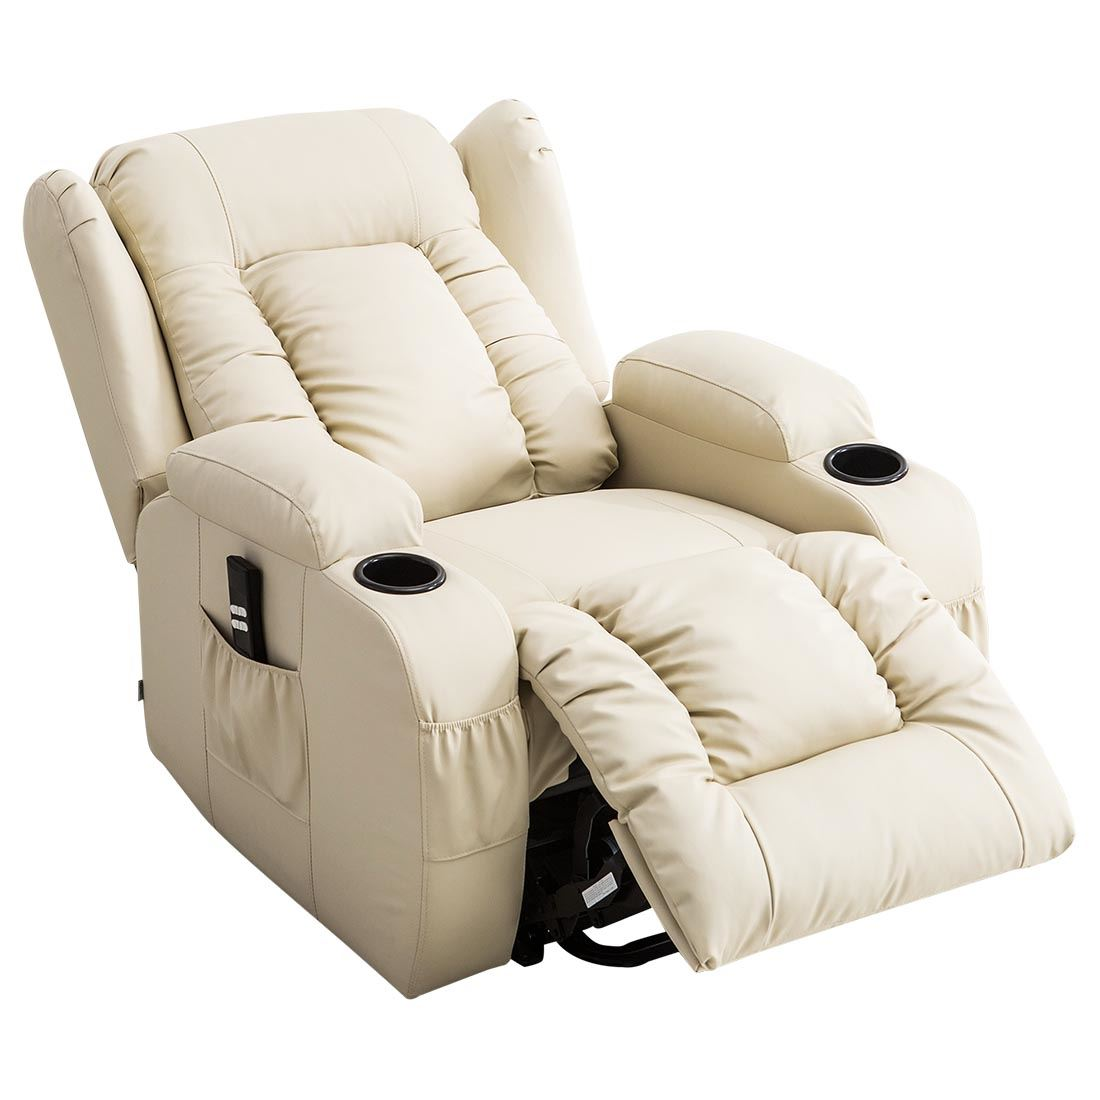 CAESAR-DUAL-MOTOR-RISER-RECLINER-LEATHER-MOBILITY-ARMCHAIR-MASSAGE-HEATED-CHAIR thumbnail 20